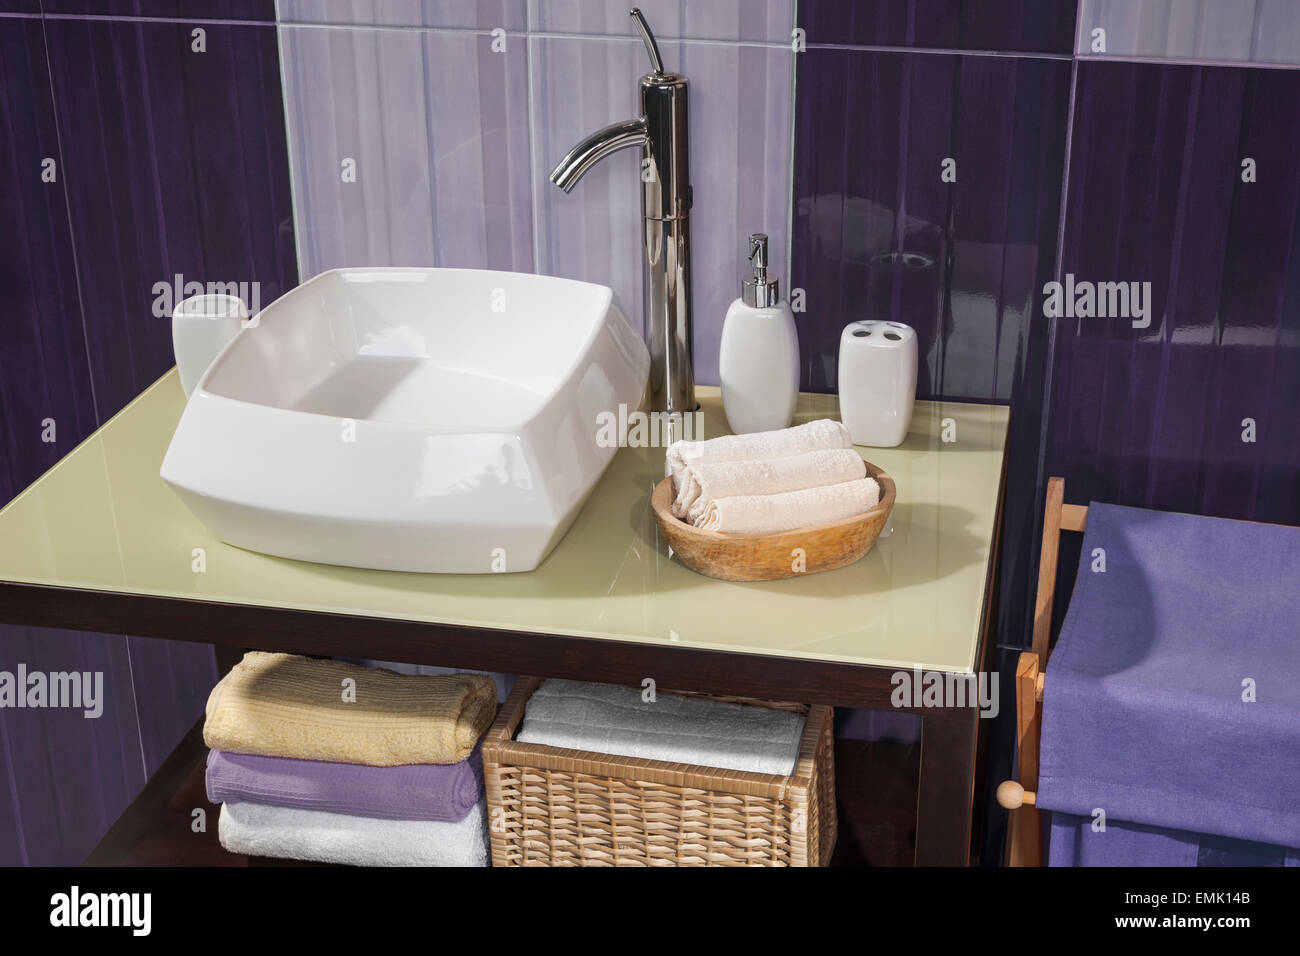 detail of a modern bathroom with sink and accessories, bathroom cabinet and purple bathroom tiles - Stock Image